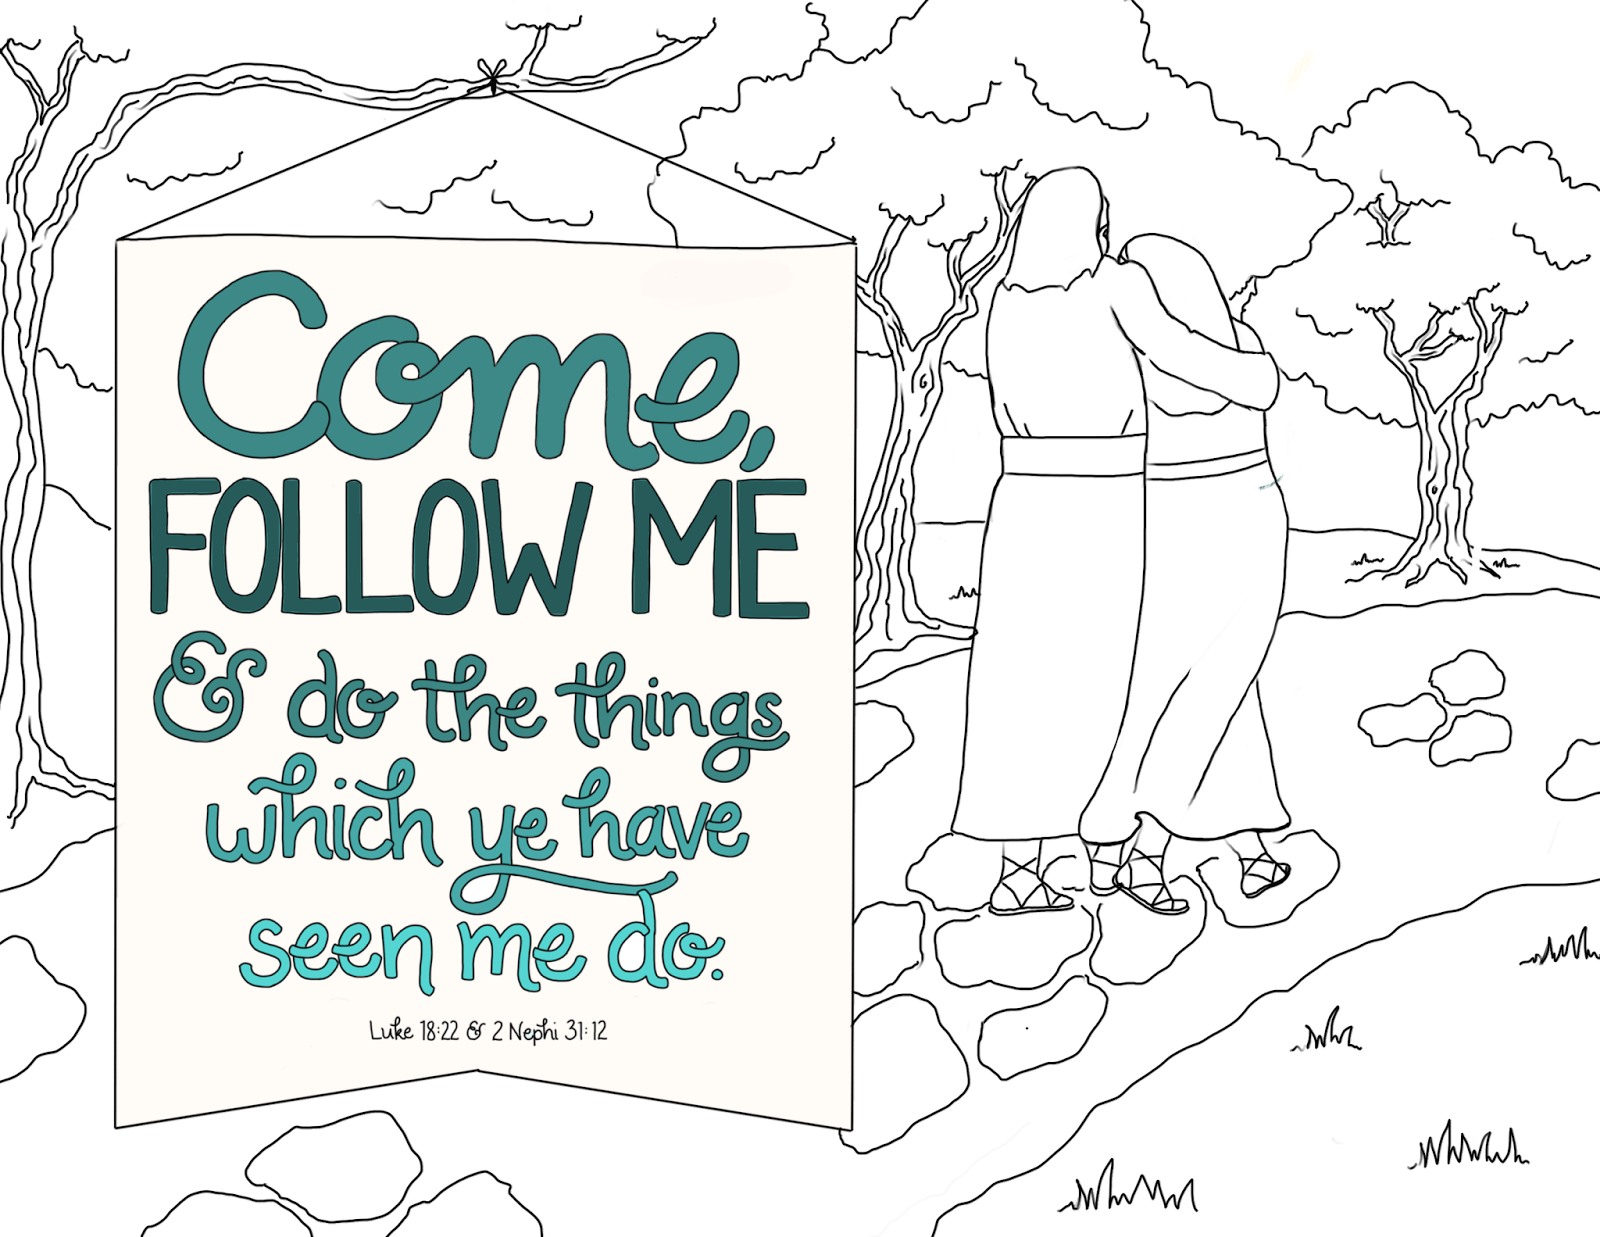 Coloring Pages For Following Jesus.  Come follow me and do the things which ye have seen a mashup of 2 scriptures one from New Testament Book Mormon just what i squeeze in coloring page 10